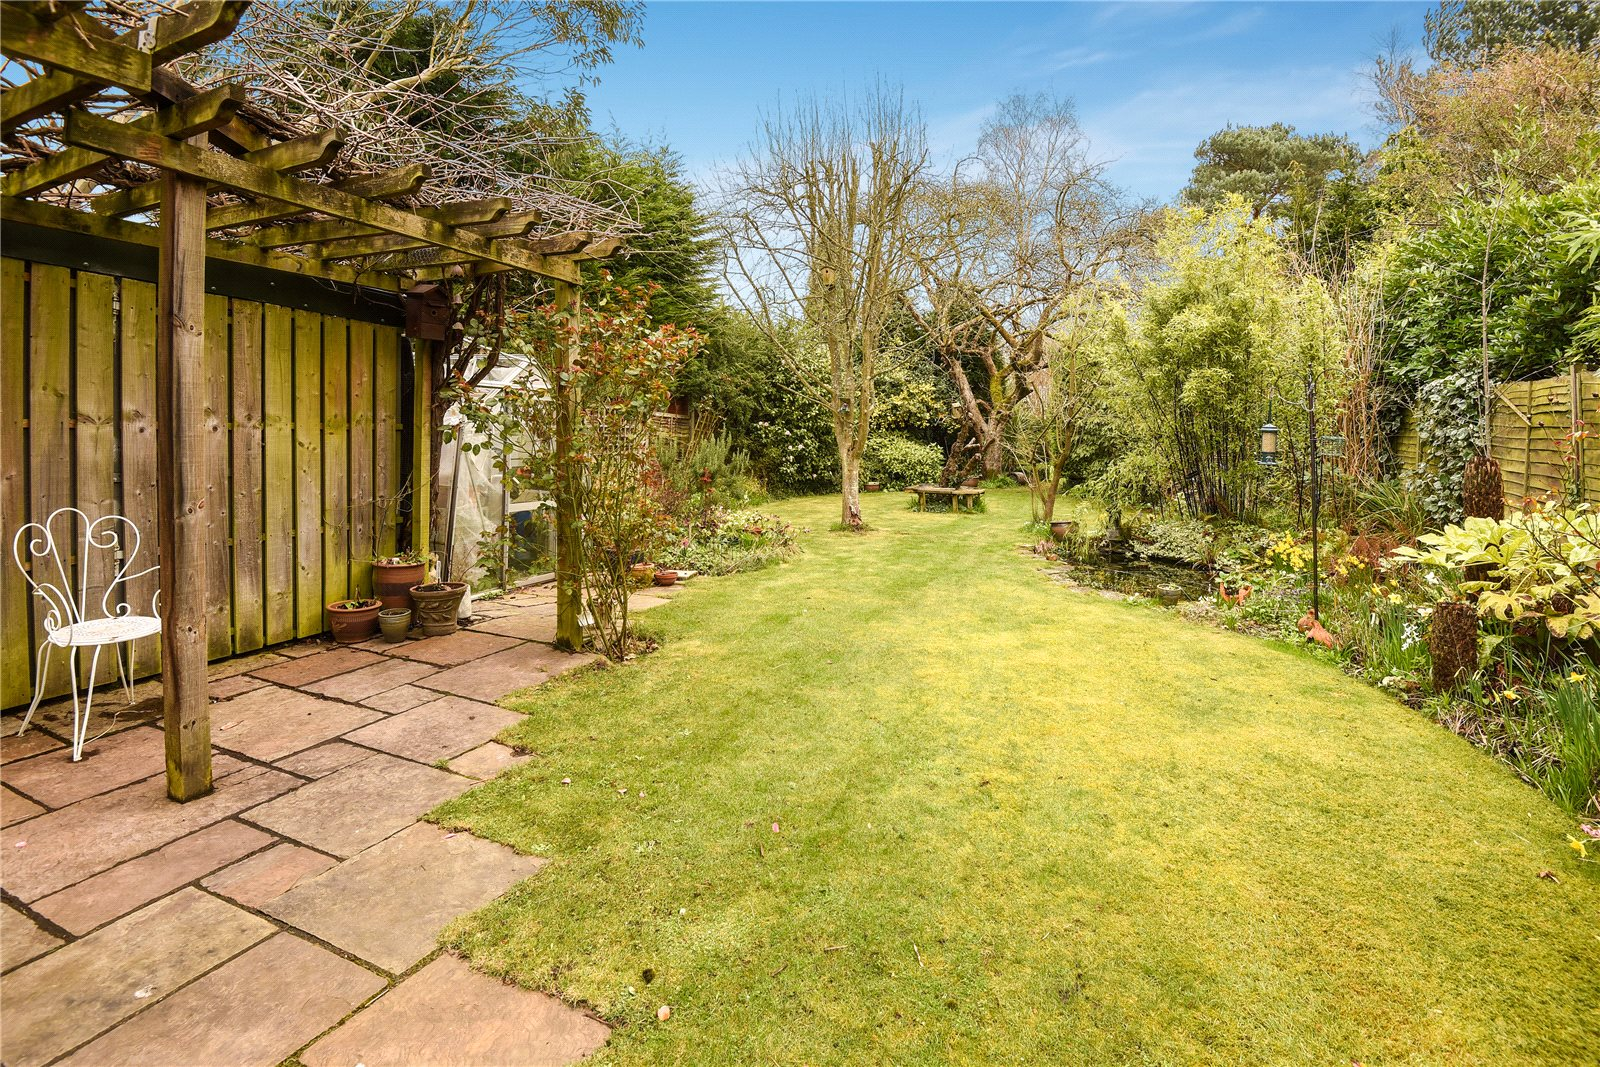 3 Bedrooms Detached Bungalow for sale in New Wokingham Road, Crowthorne, Berkshire, RG45